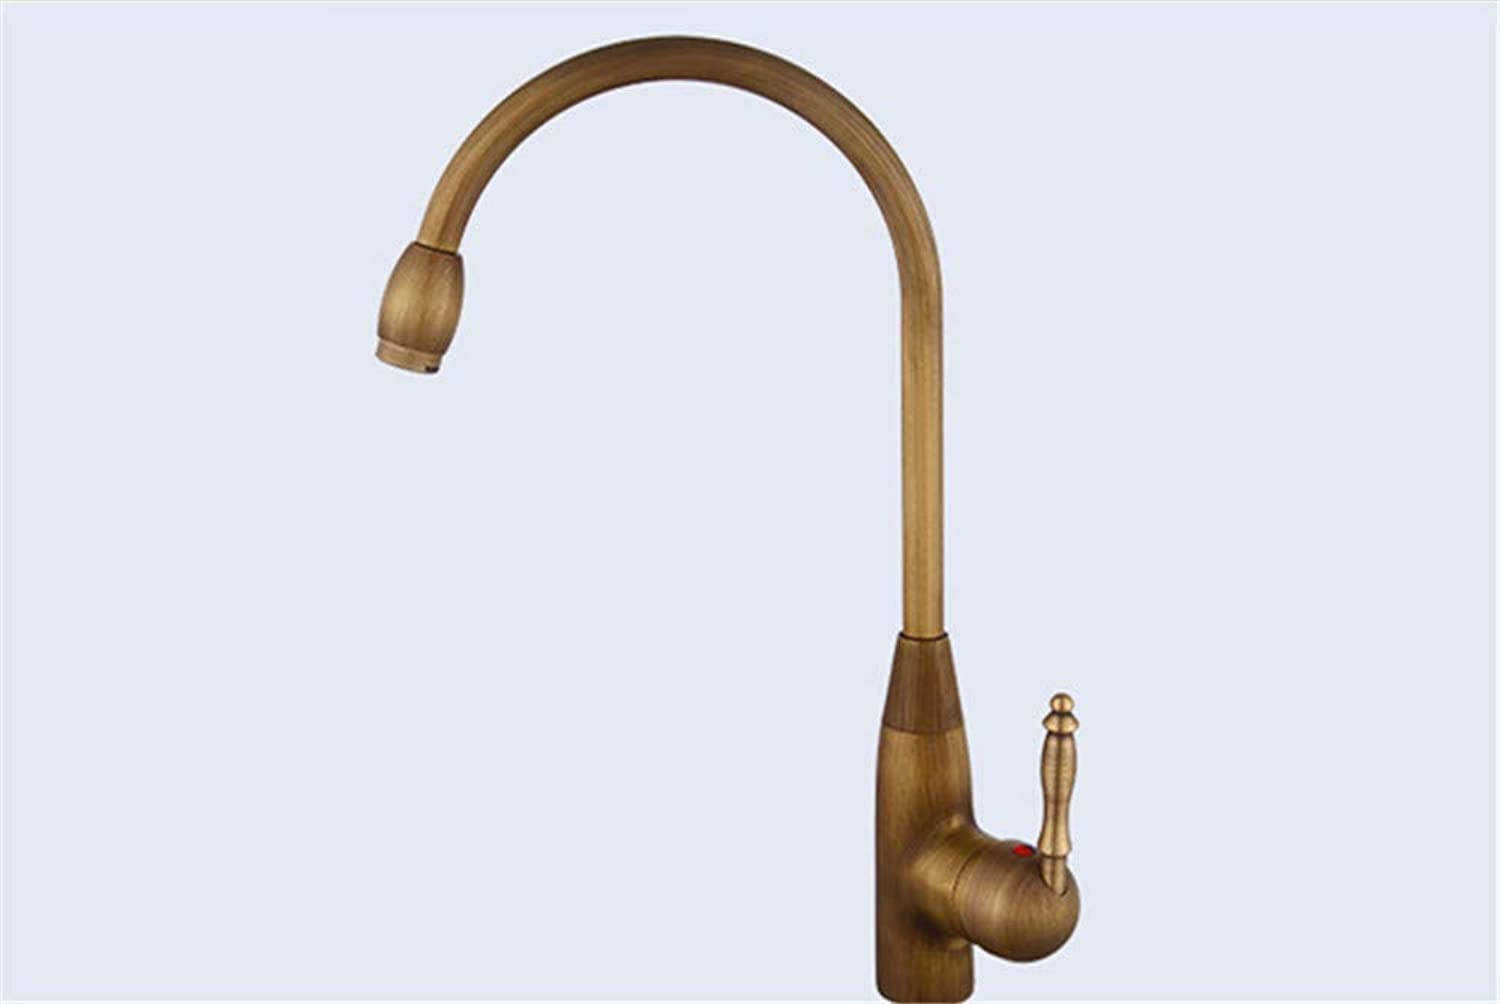 Copper antique basin faucet hot and cold water lengthening single hole single handle